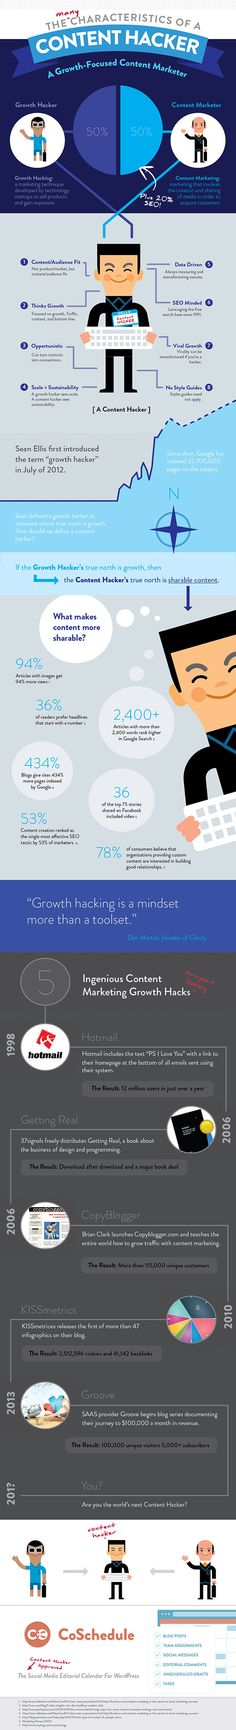 How To Become A Content Marketing Hacker